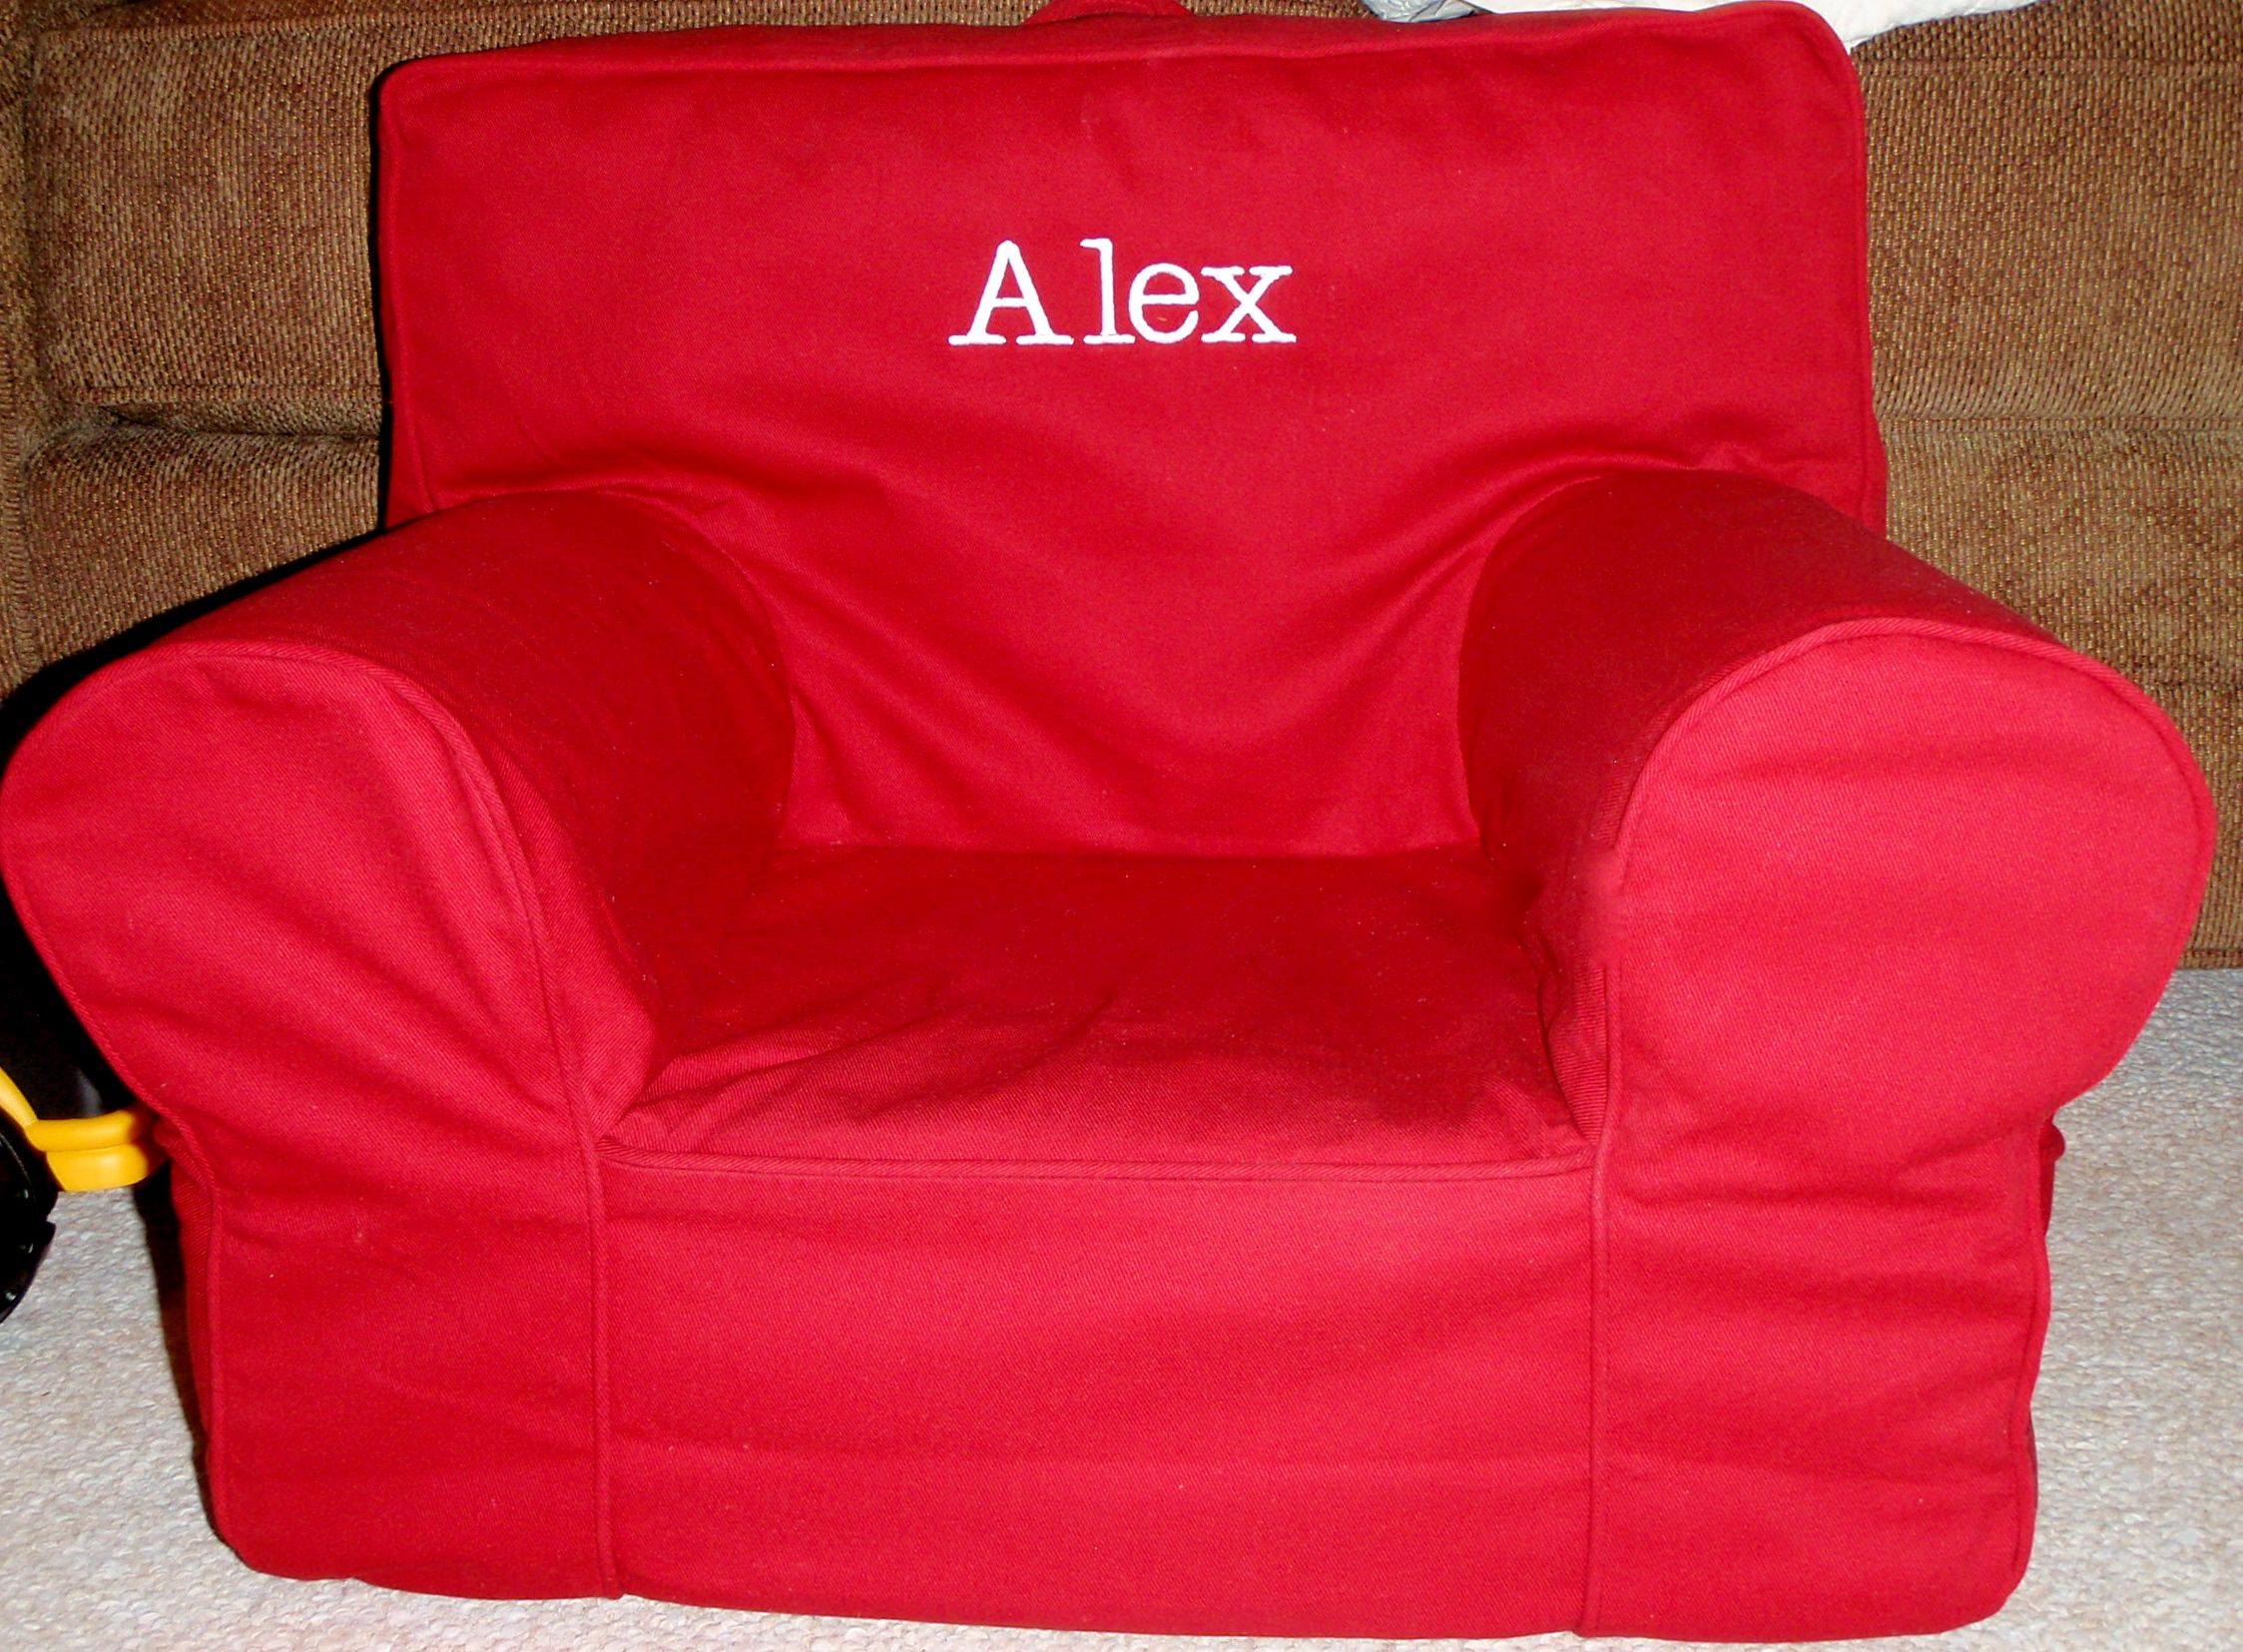 And If You Missed It, Here Is A Link To A Post On How To Make Your Own Foam  Insert For An Anywhere Chair.